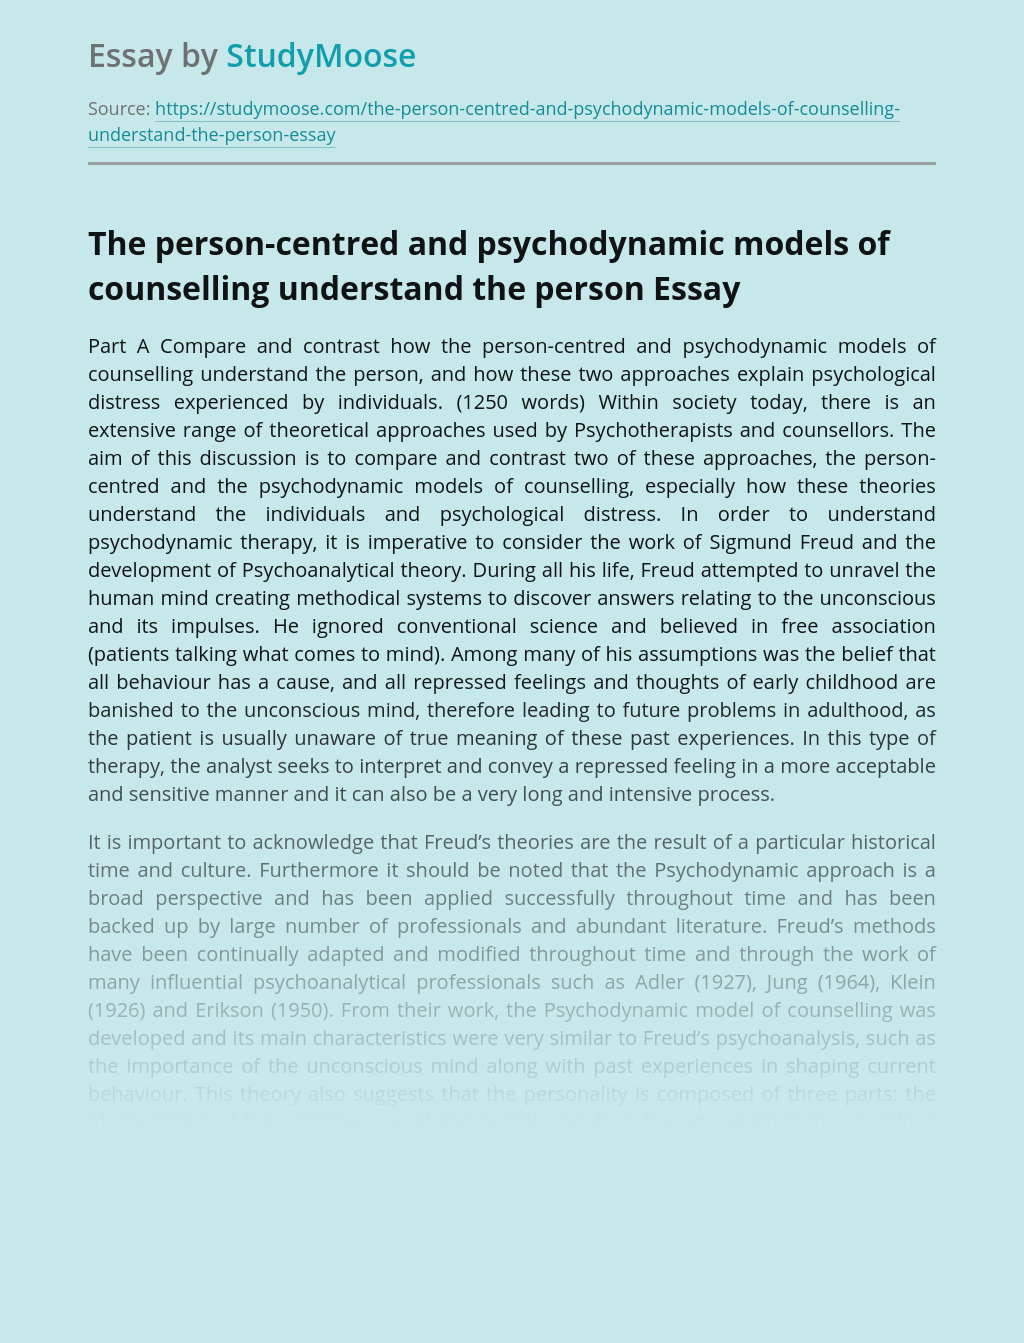 The person-centred and psychodynamic models of counselling understand the person